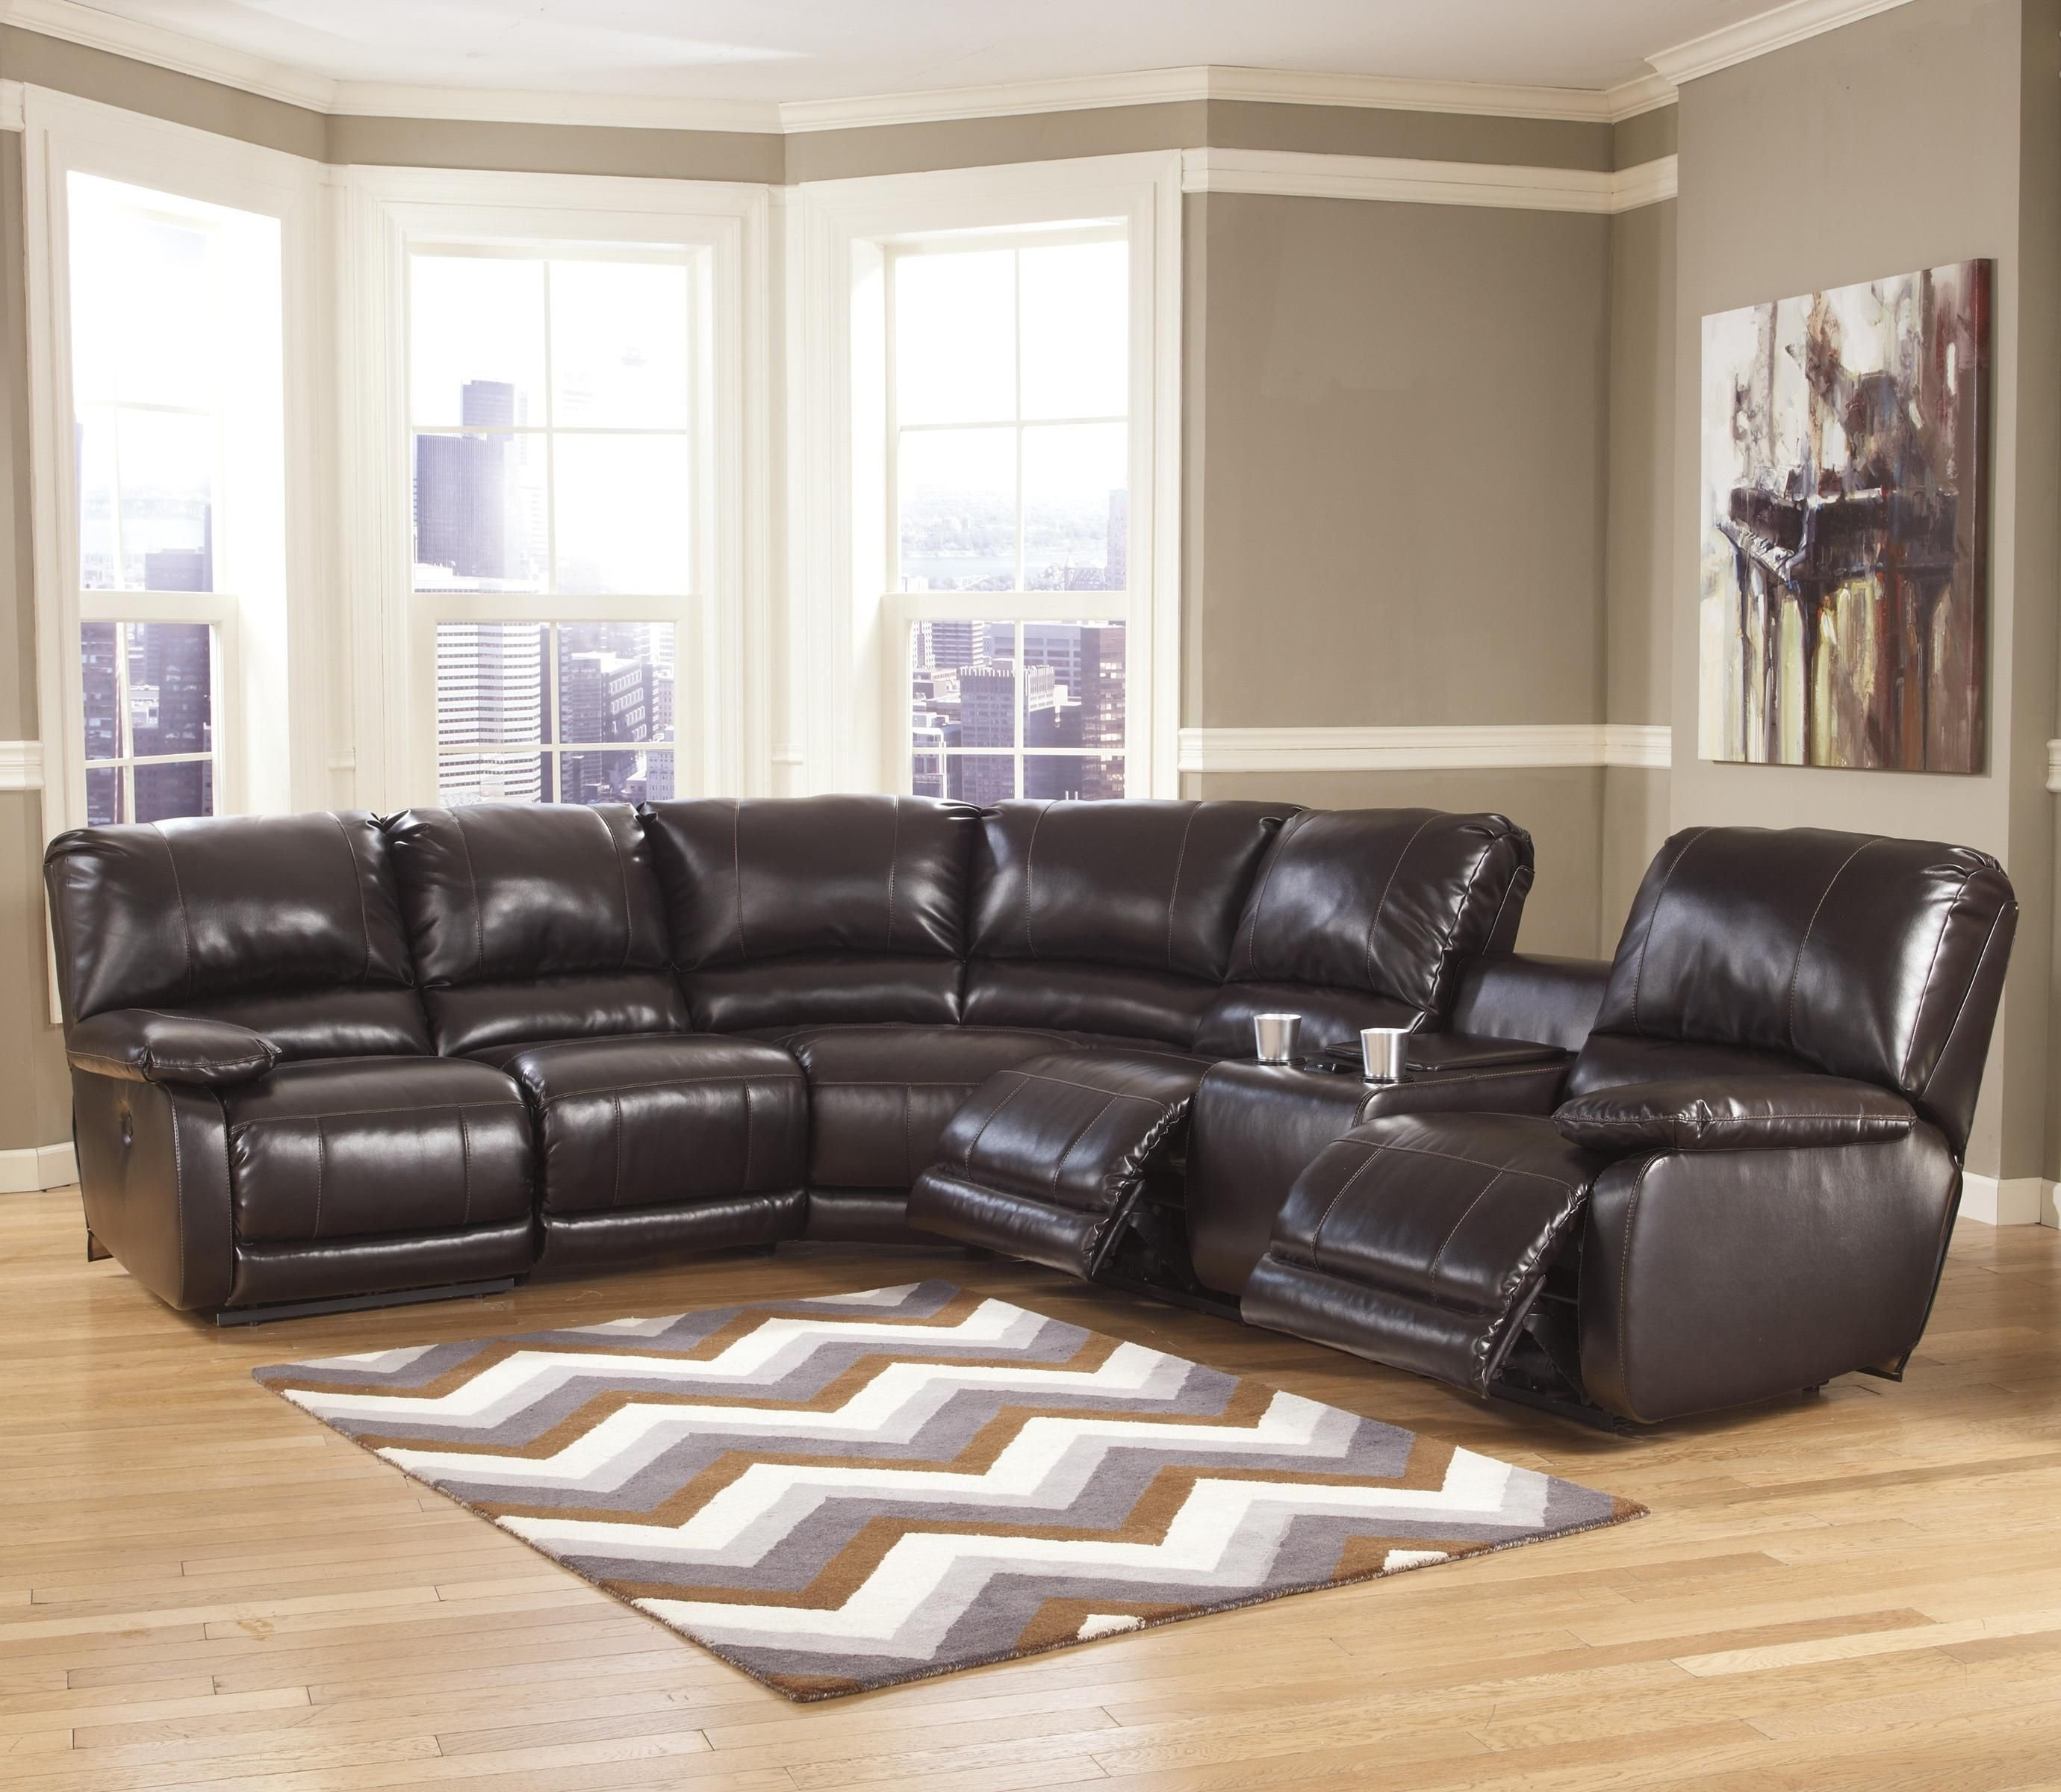 Fabulous 25 Power Reclining Sectional Sofa Favorite intended for Calder Grey 6 Piece Manual Reclining Sectionals (Image 7 of 30)